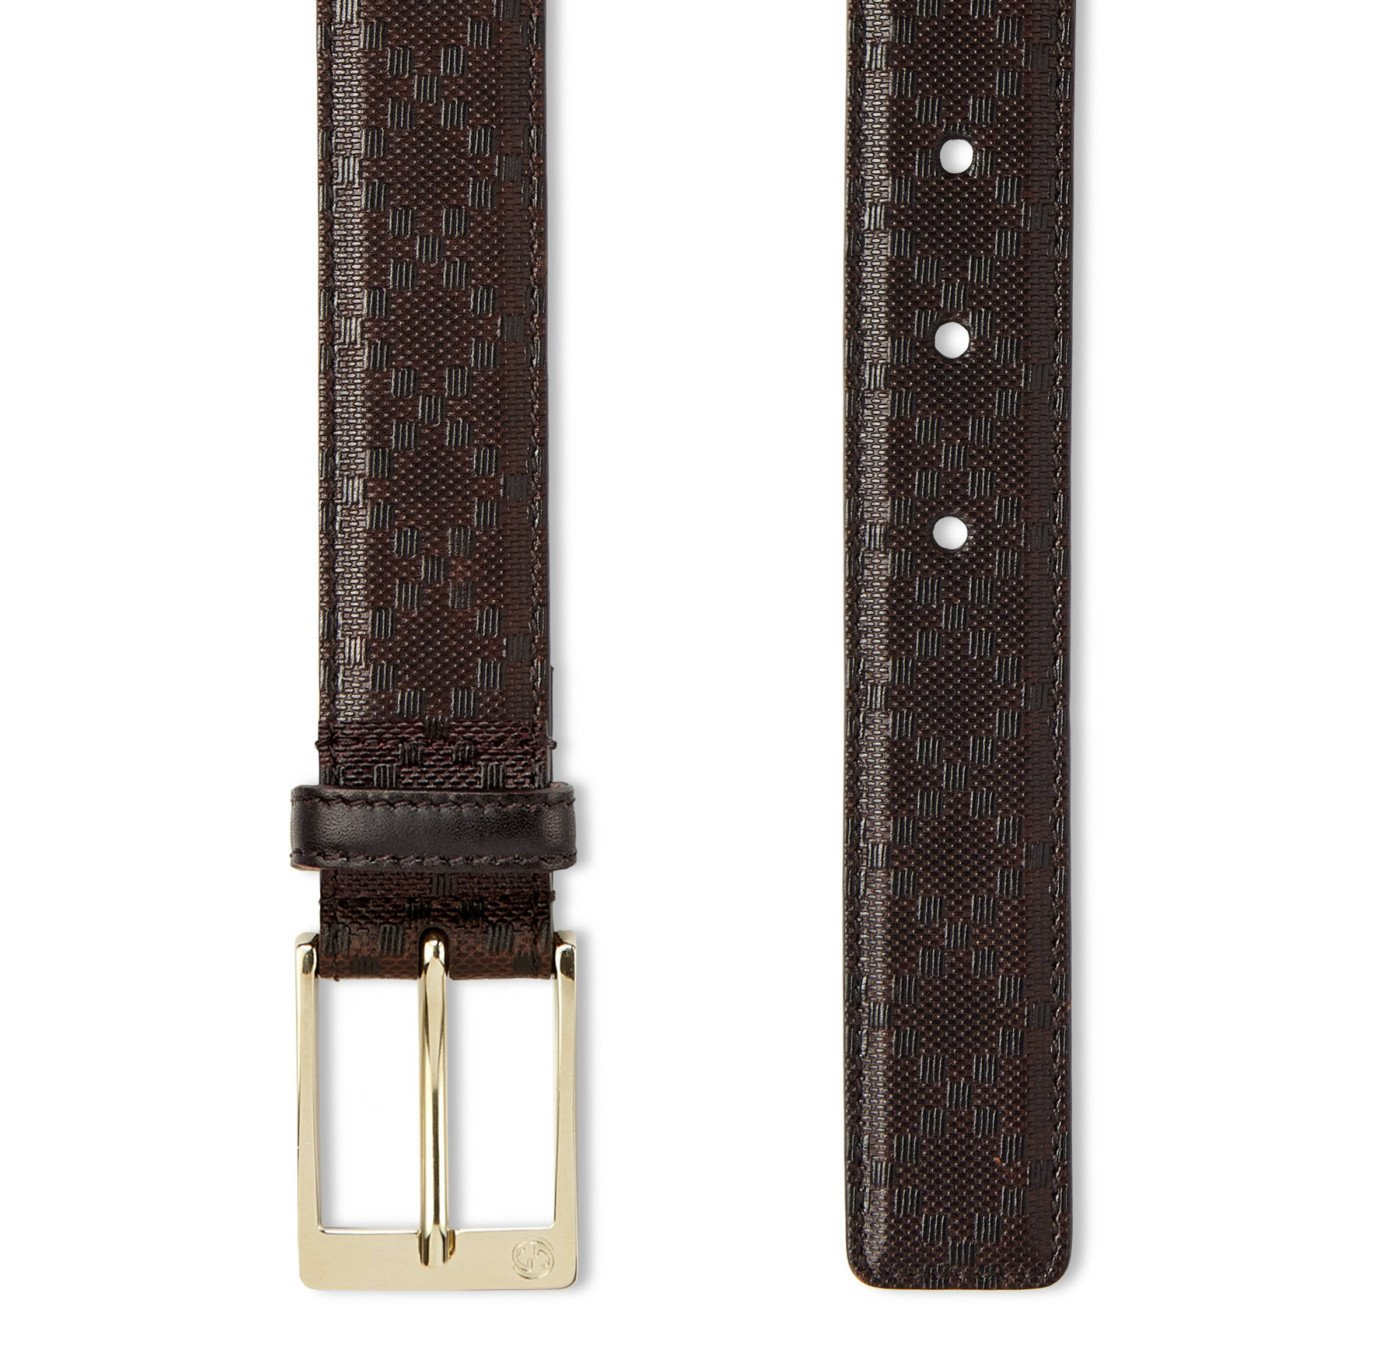 Gucci GG Brown Diamante Leather Square Buckle Belt, Brown, 44 by Gucci (Image #2)